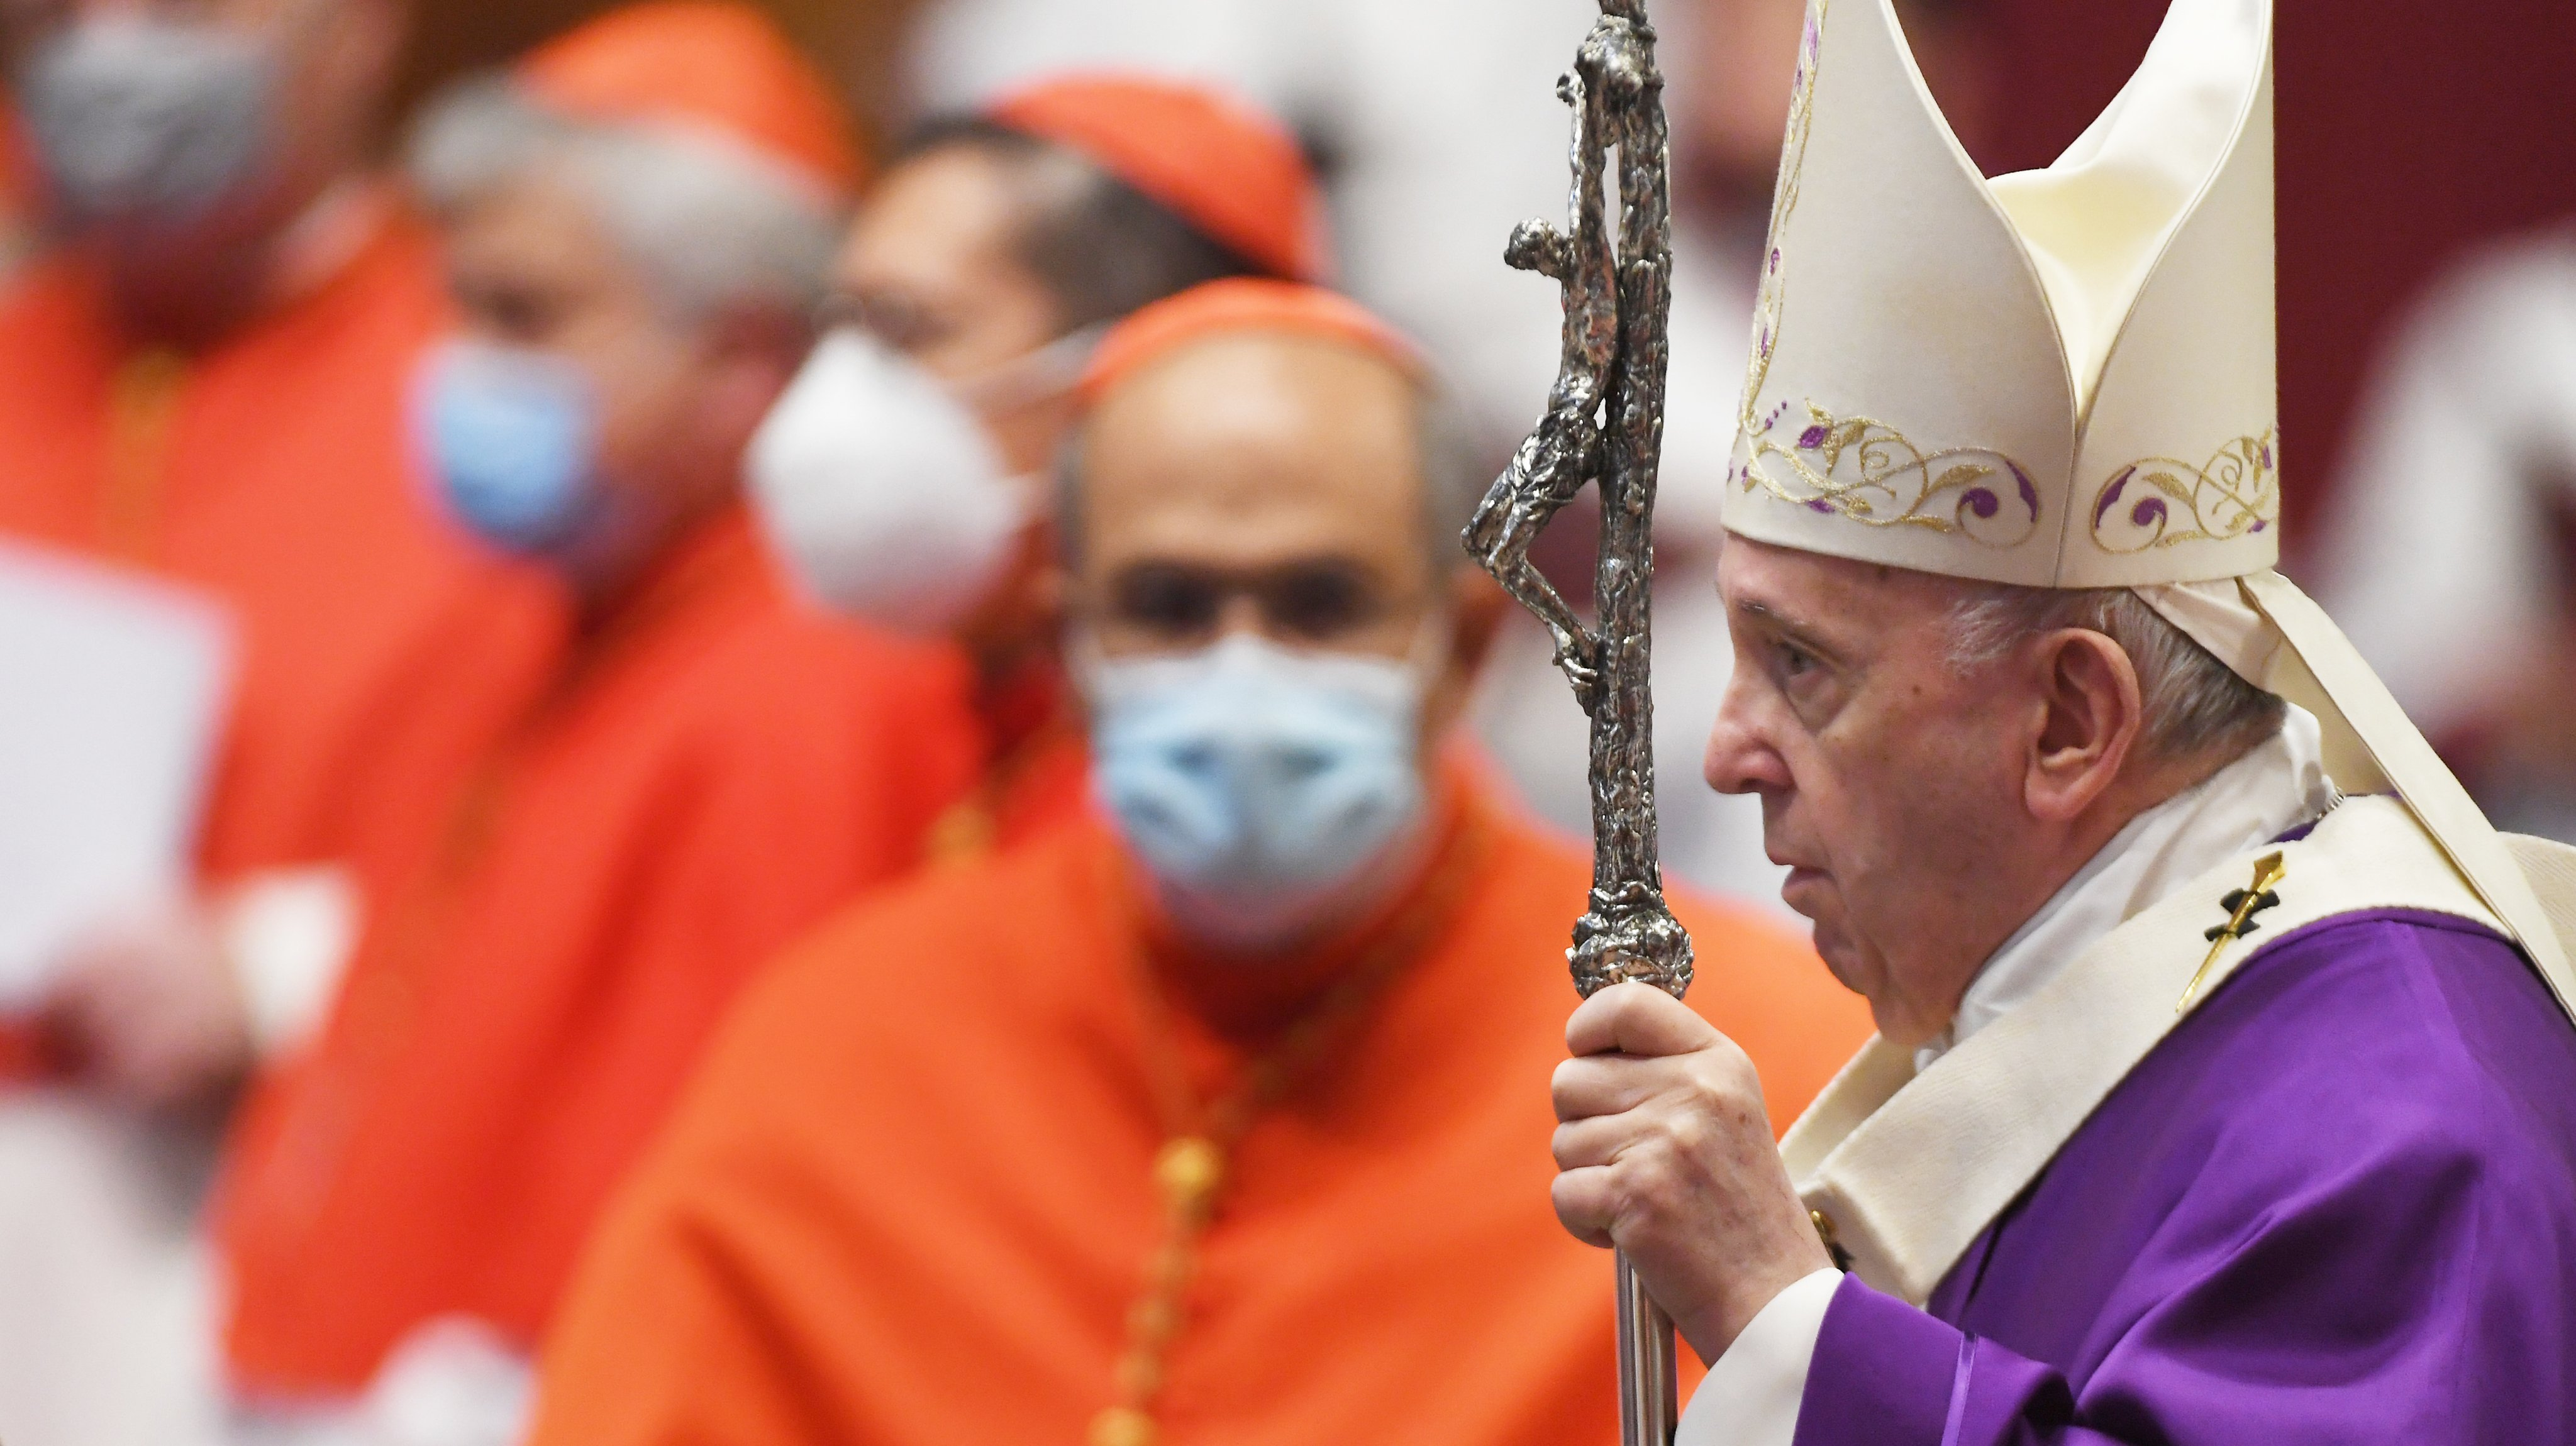 Eucharistic Celebration With New Cardinals